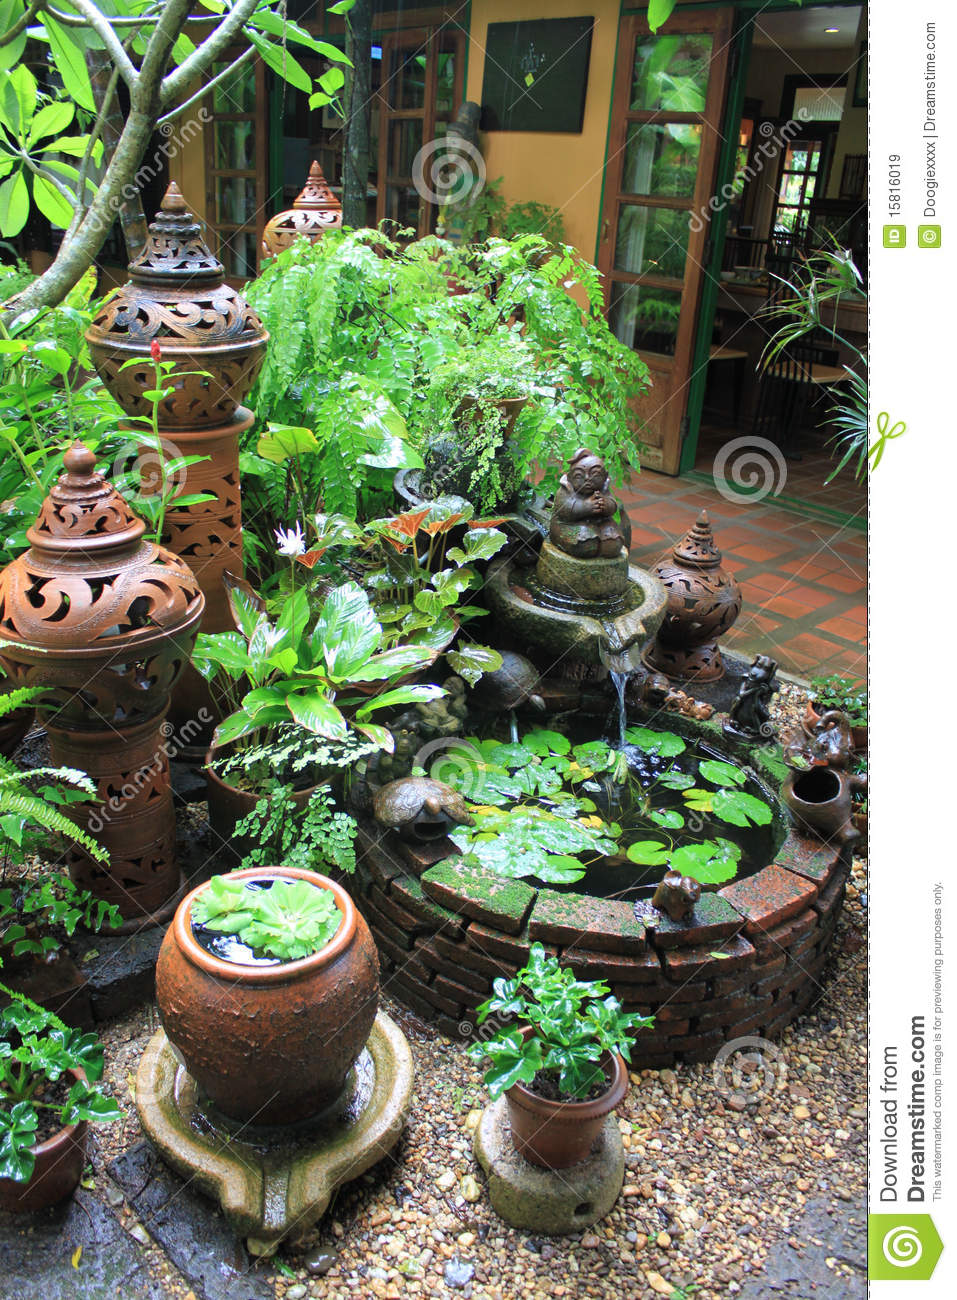 Clay Pottery In Botanical Garden Setting Royalty Free